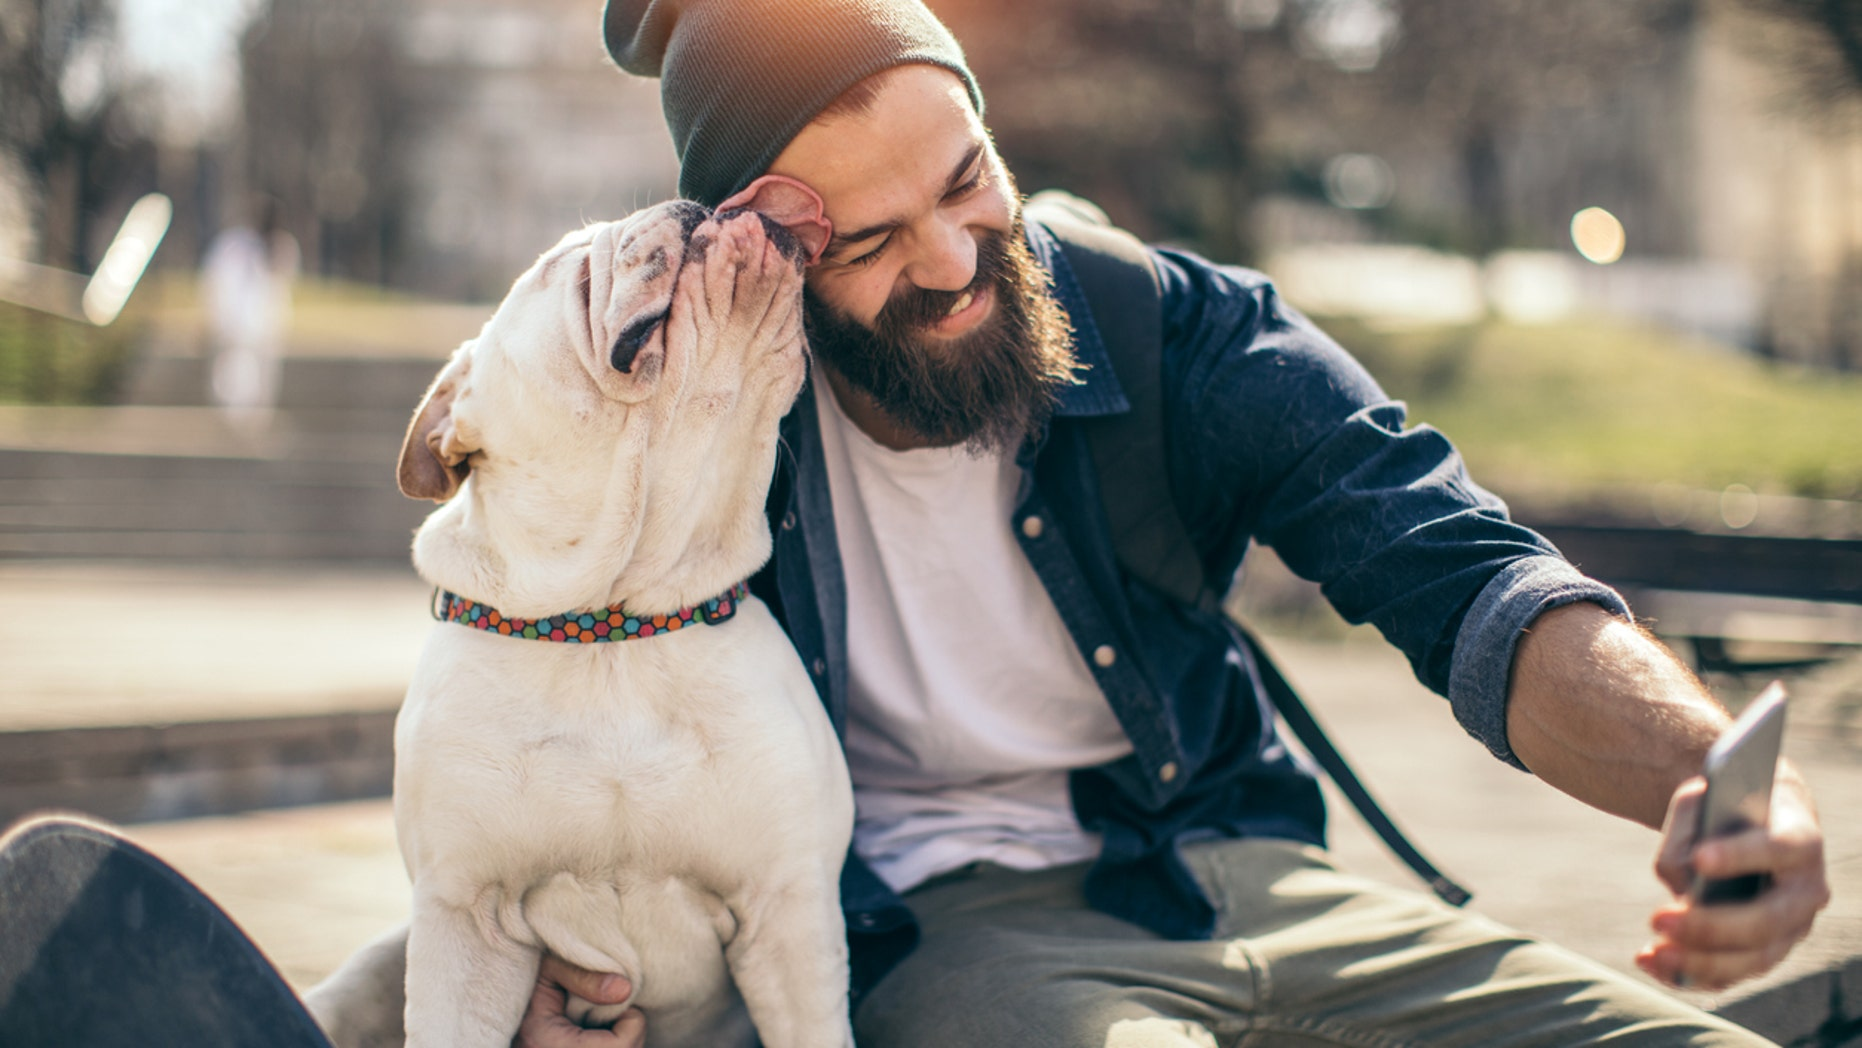 Bearded men carry more germs than dogs